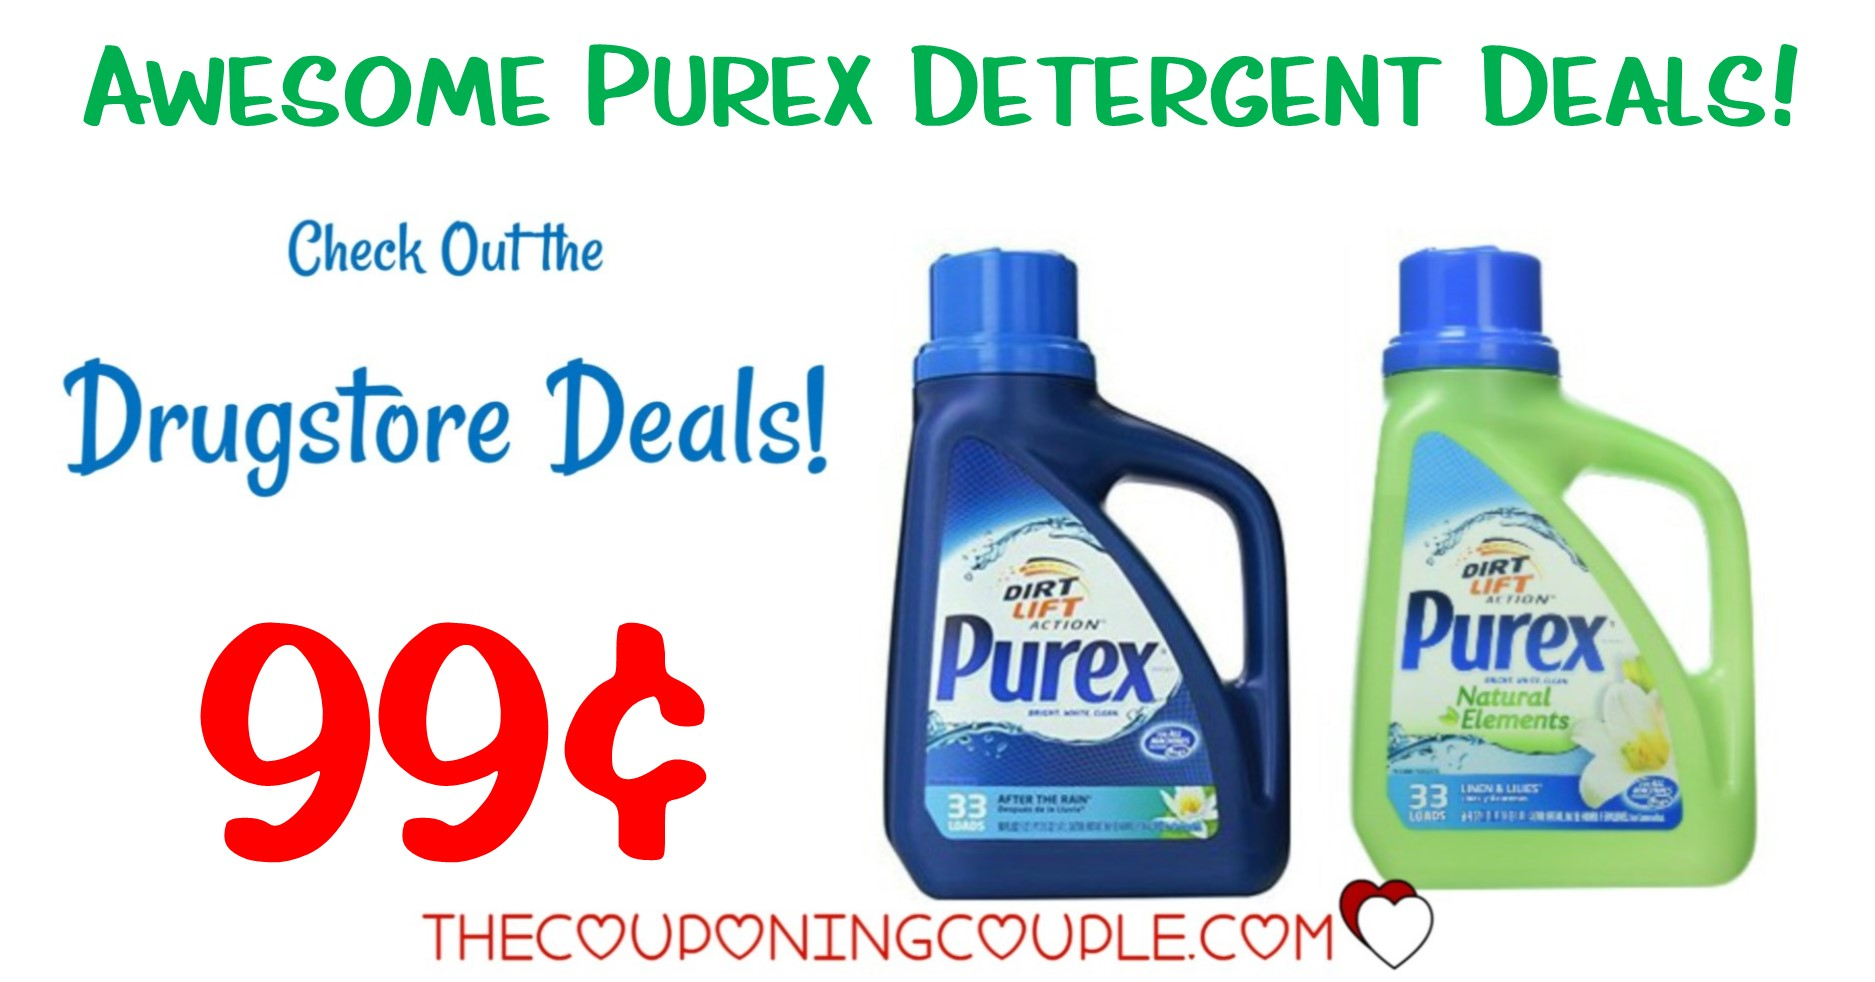 Hot** Purex Detergent Coupon + Drugstore Deals = $0.99 Each! - Free Printable Purex Detergent Coupons